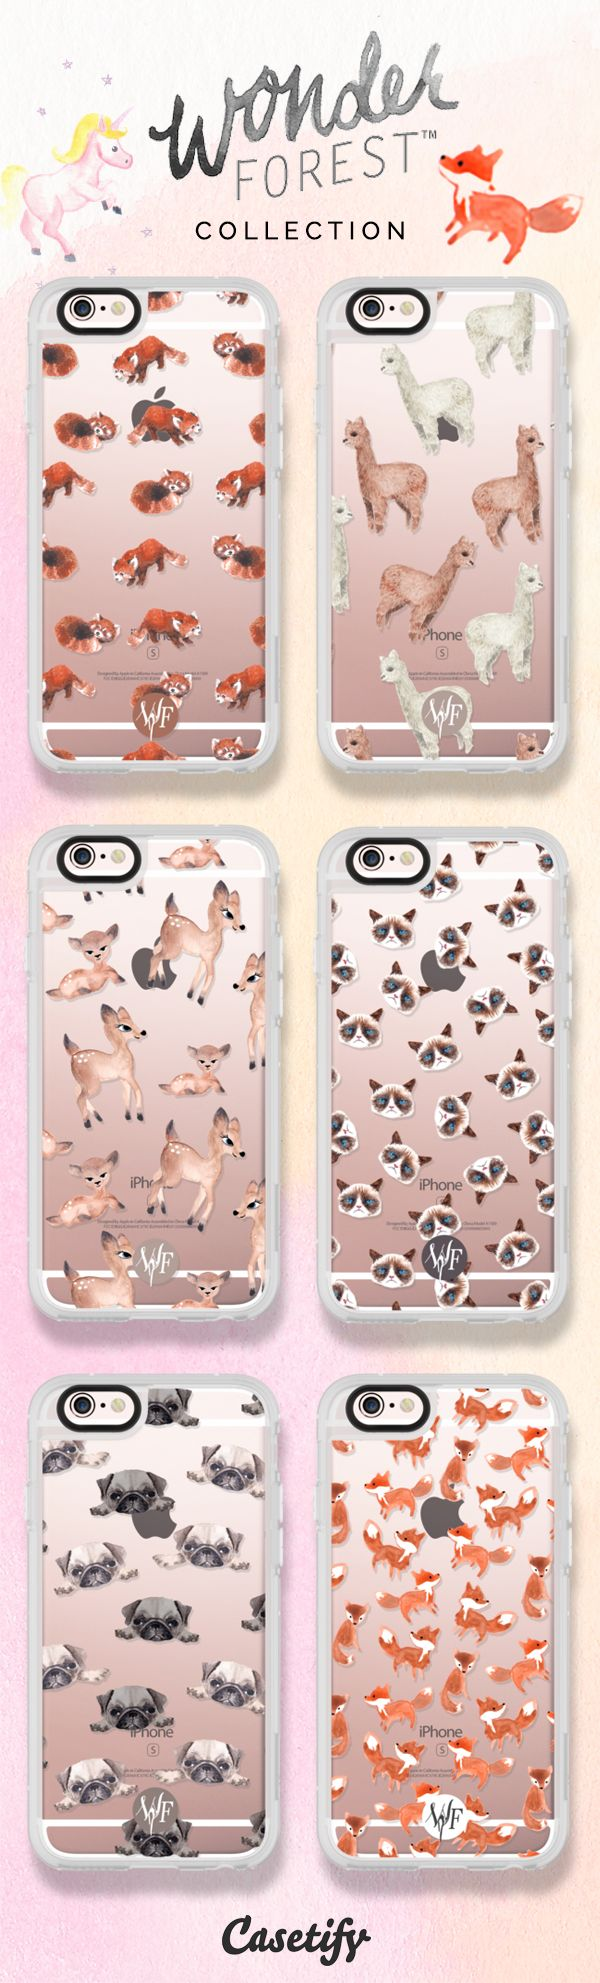 6 most popular animal iPhone 6s protective phone case designs by @wonderforest | Click through to see more forest animal iphone phone case ideas >>> https://www.casetify.com/wonderforest/collection | @casetify